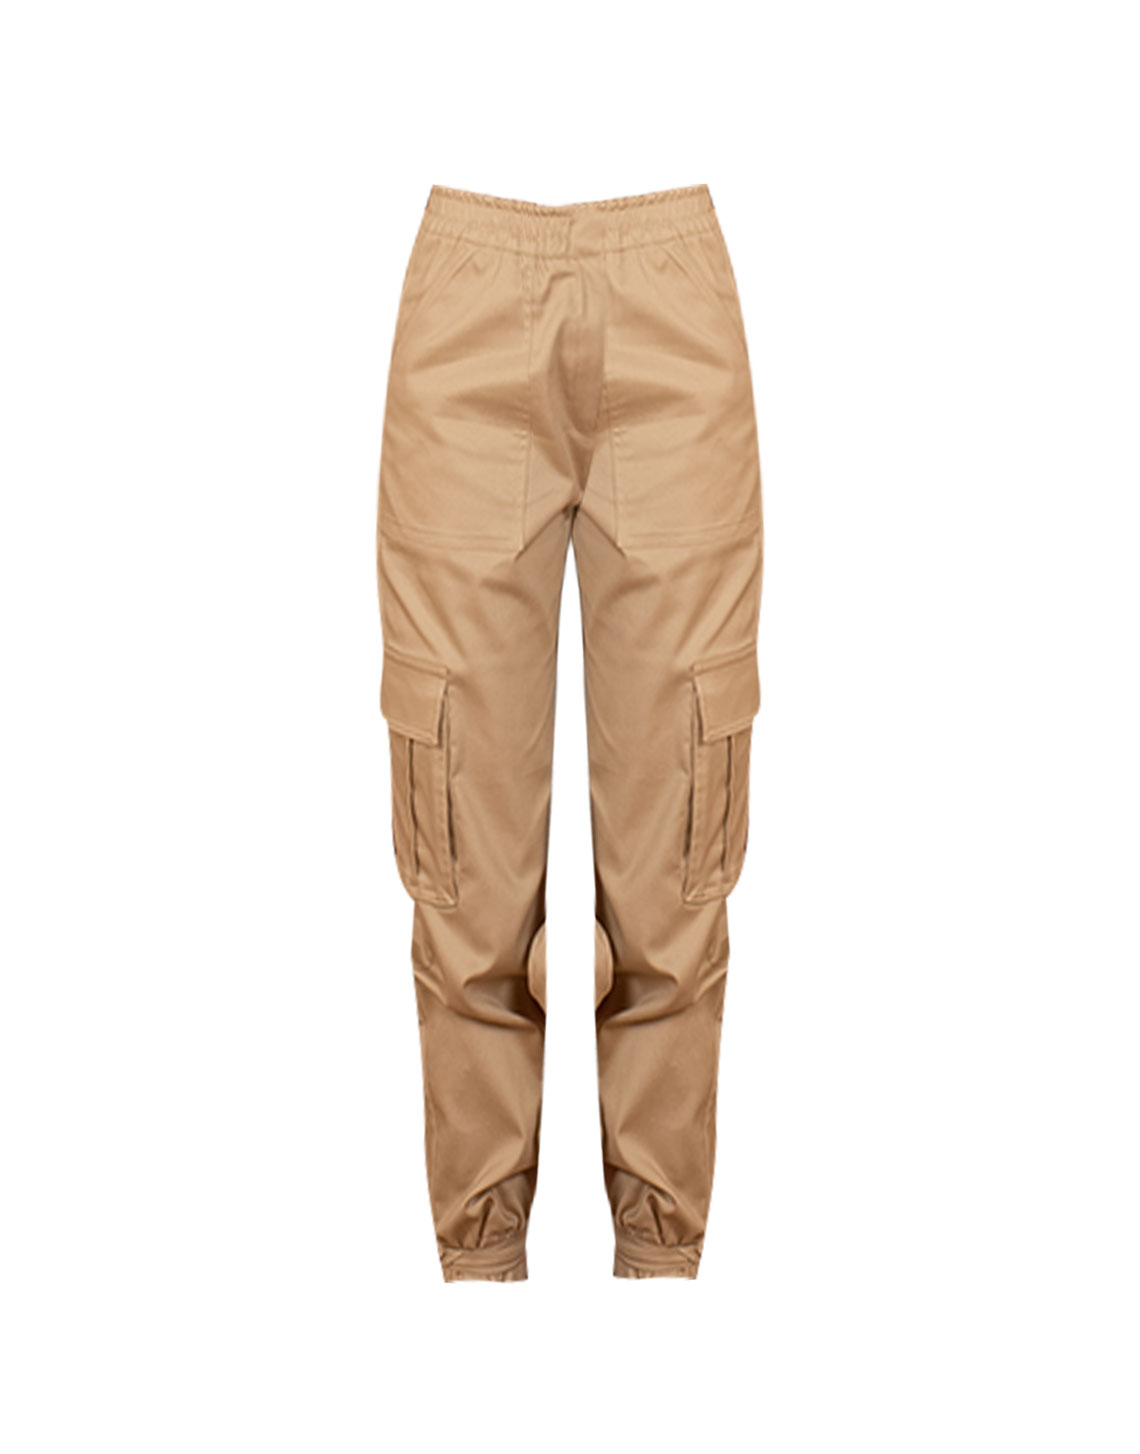 Lash Pants - Beige by Jessica K on curated-crowd.com